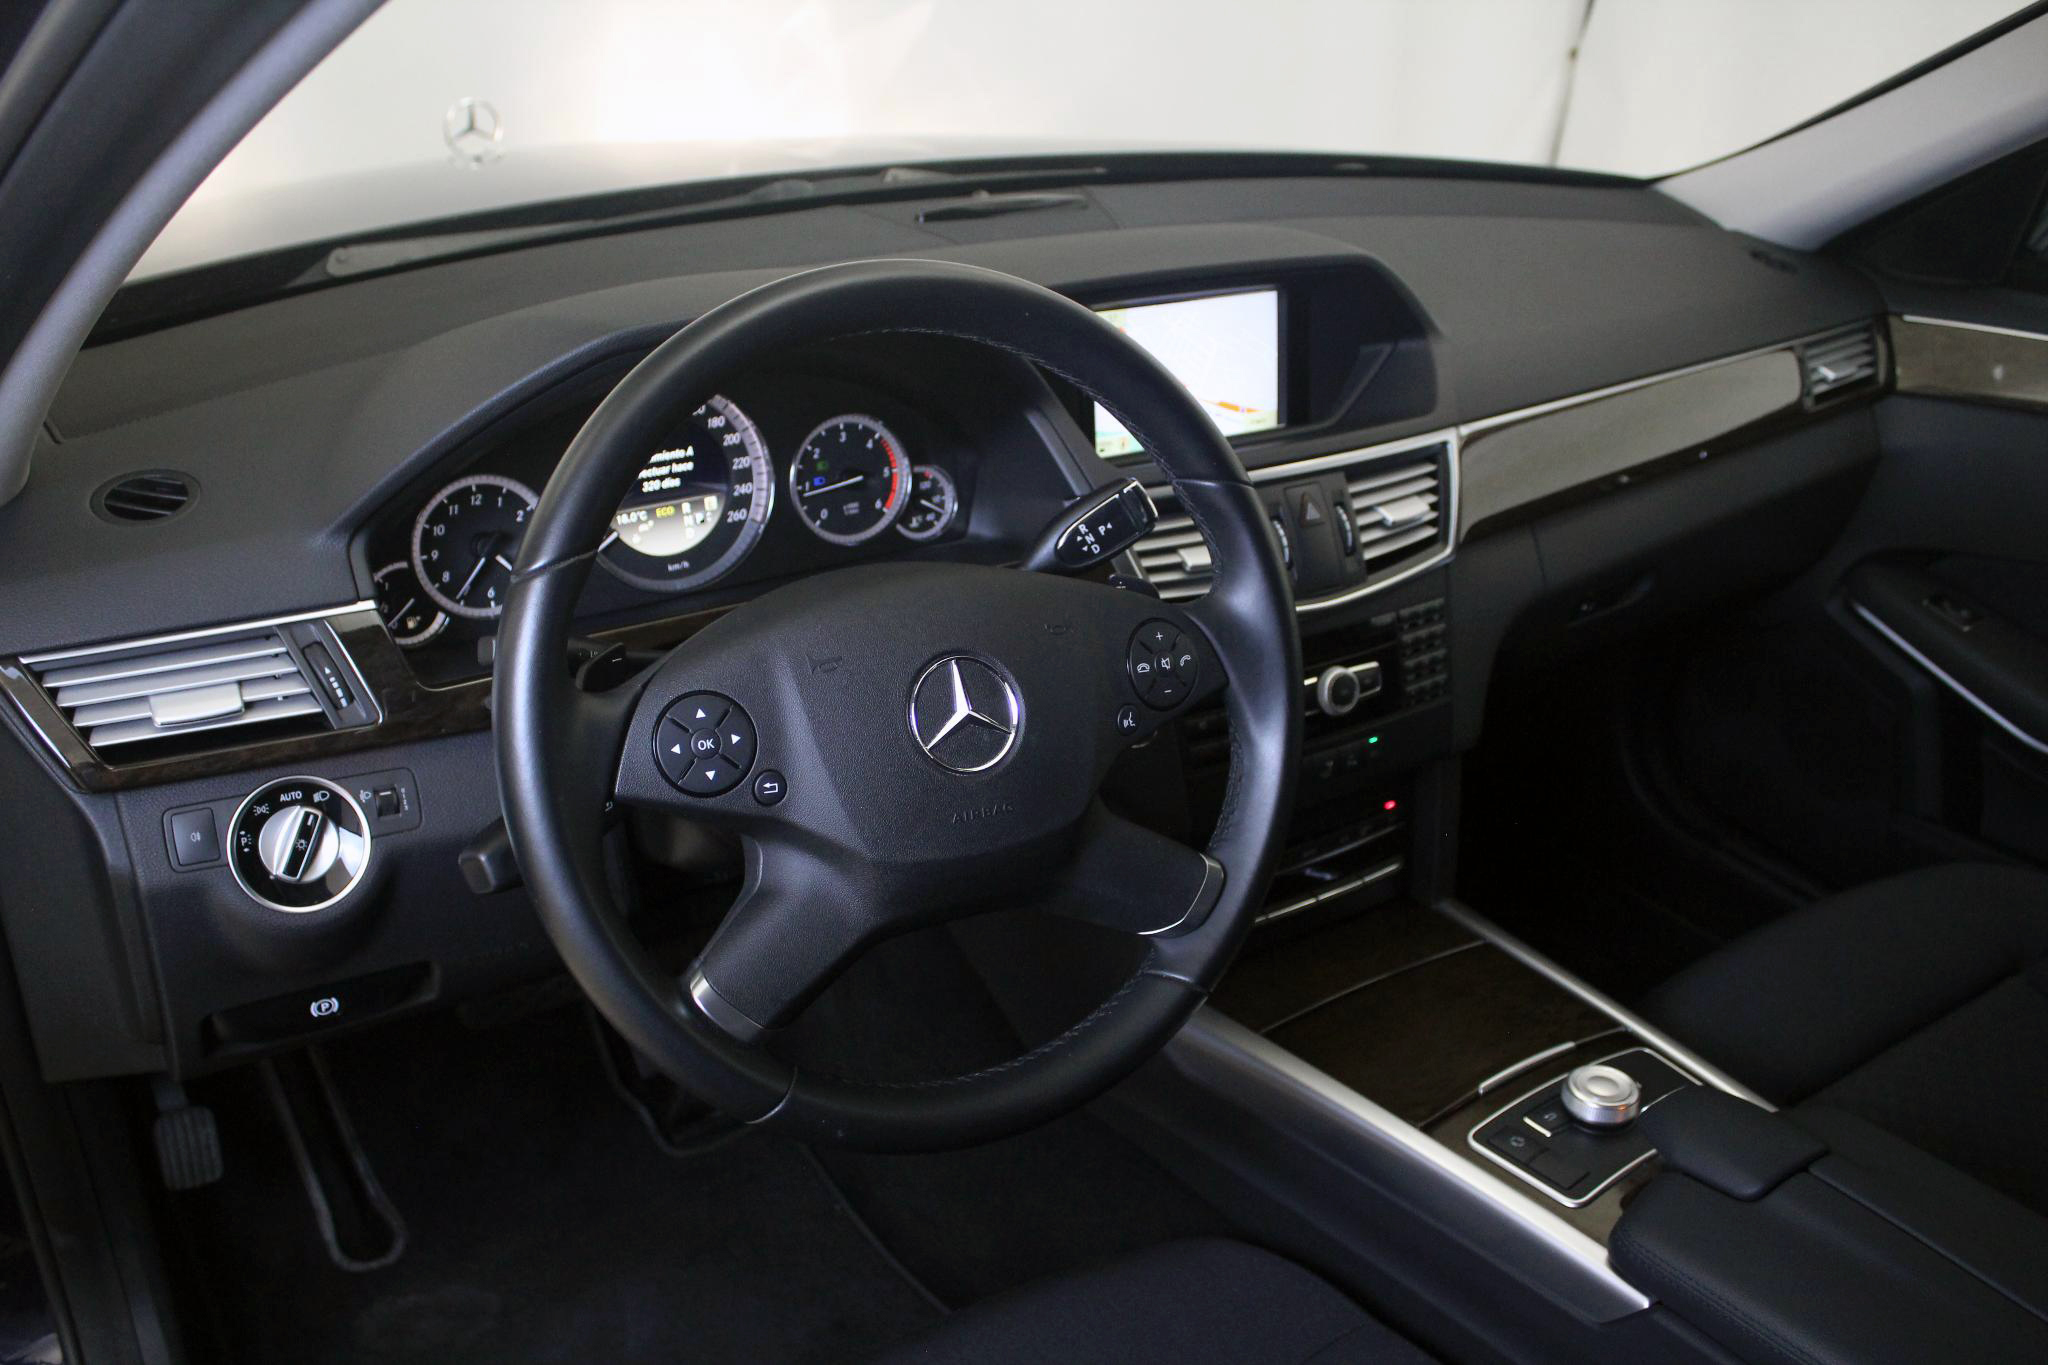 Mercedes-Benz Clase E CLASE E 250 CDI BLUE EFFICIENCY AUTO imagen 25